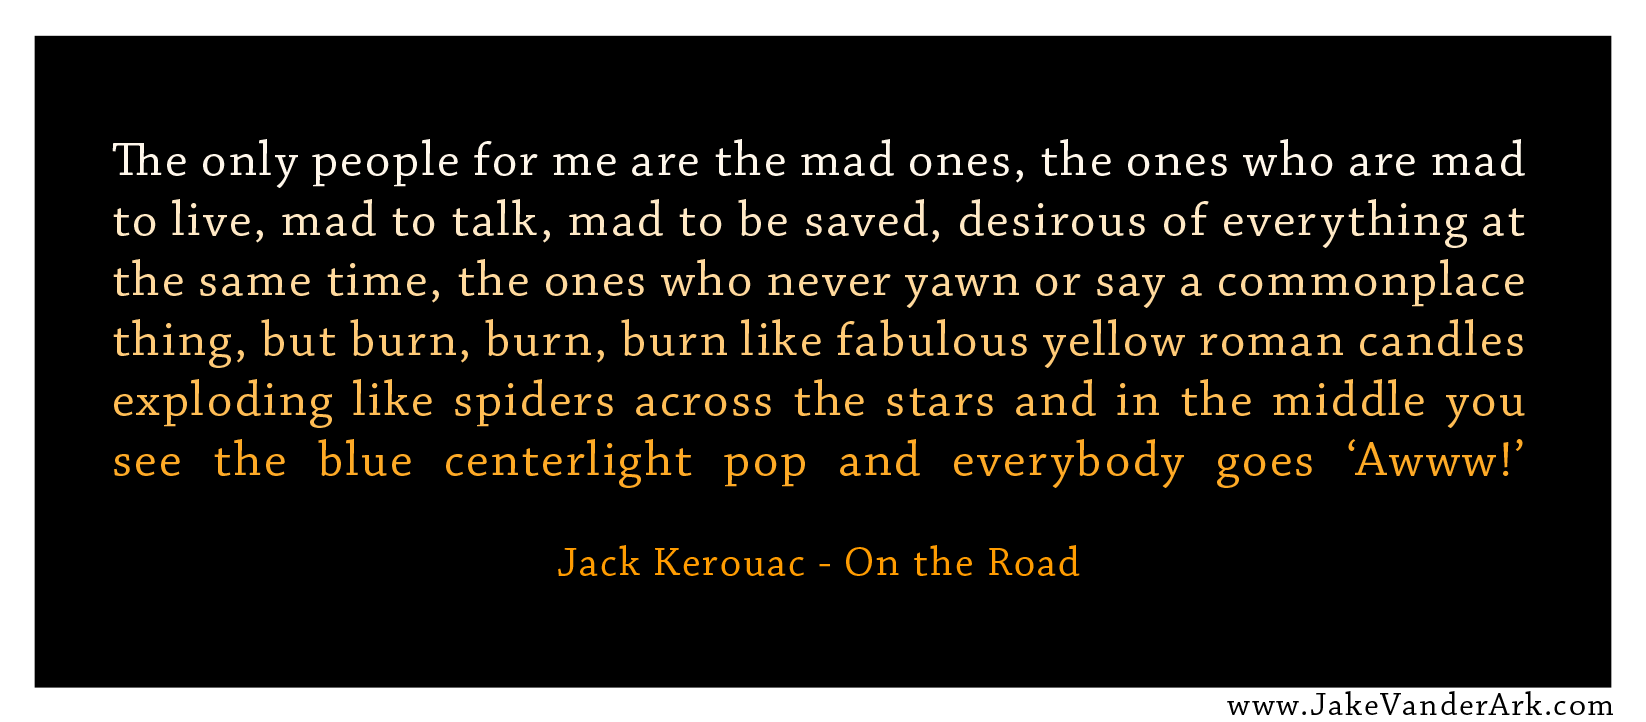 Jack Kerouac's quote #4